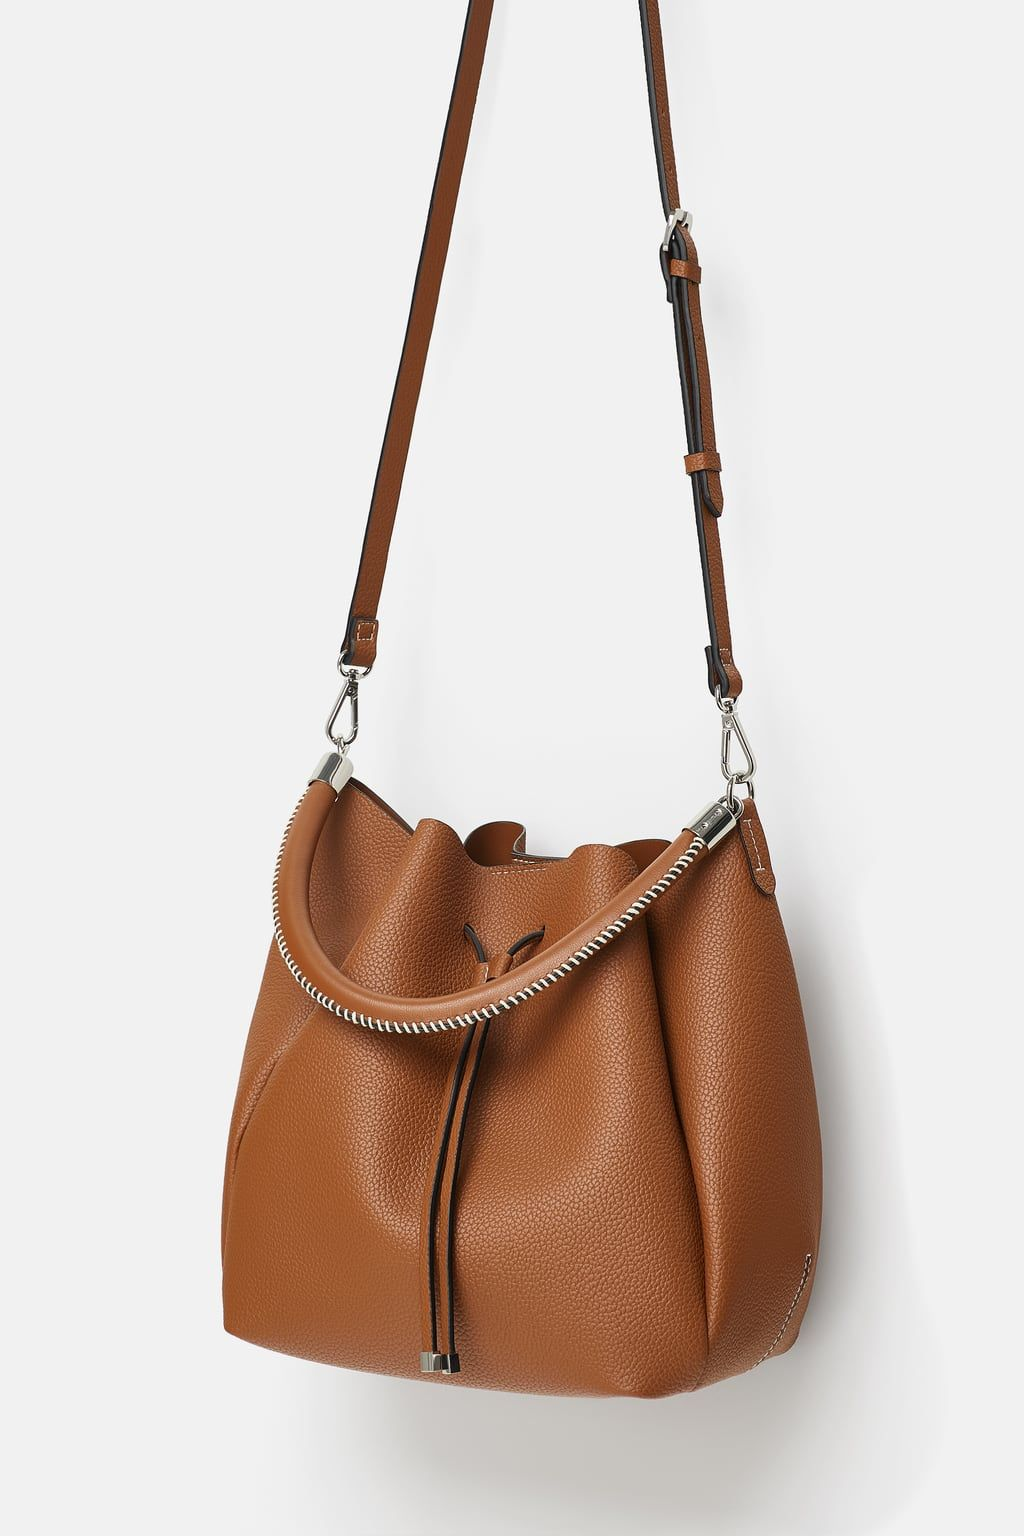 35b3c3dd17 Image 3 of BUCKET BAG WITH TOPSTITCHED HANDLE from Zara